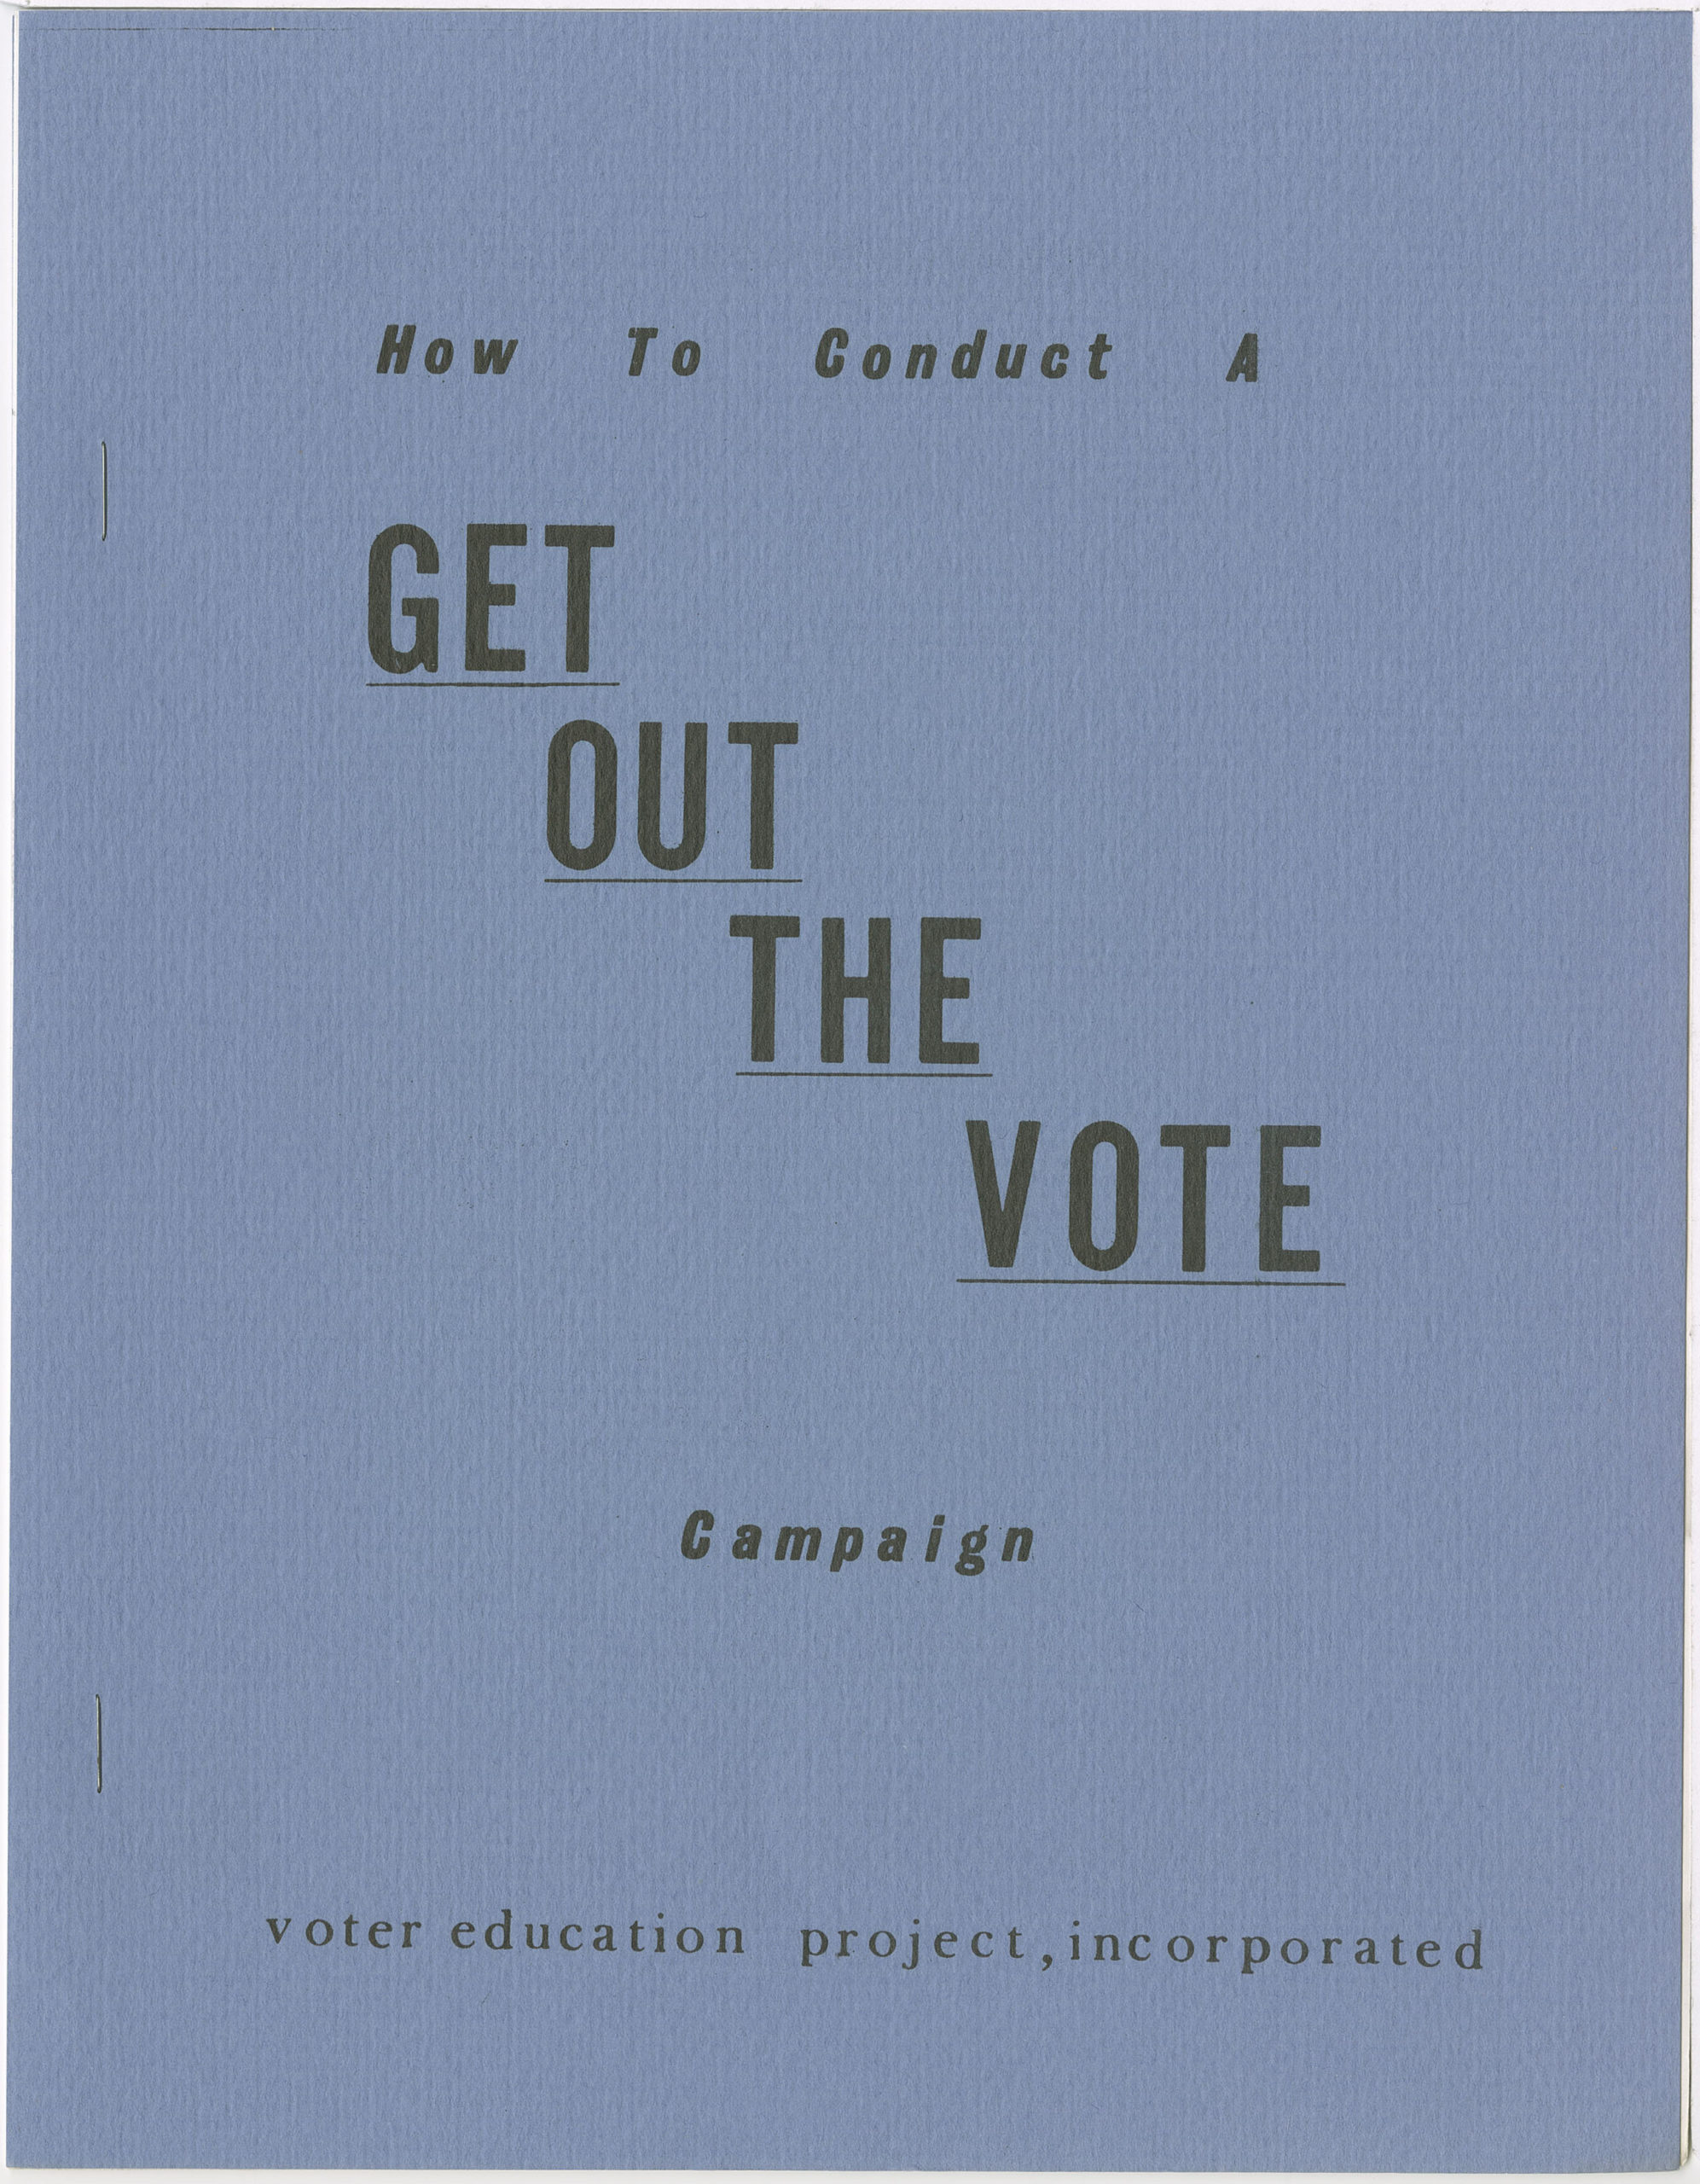 How to Conduct a Get Out the Vote Campaign,Voter Education Project, Inc. (Atlanta, Ga.),undated,John H. Calhoun, Jr. papers